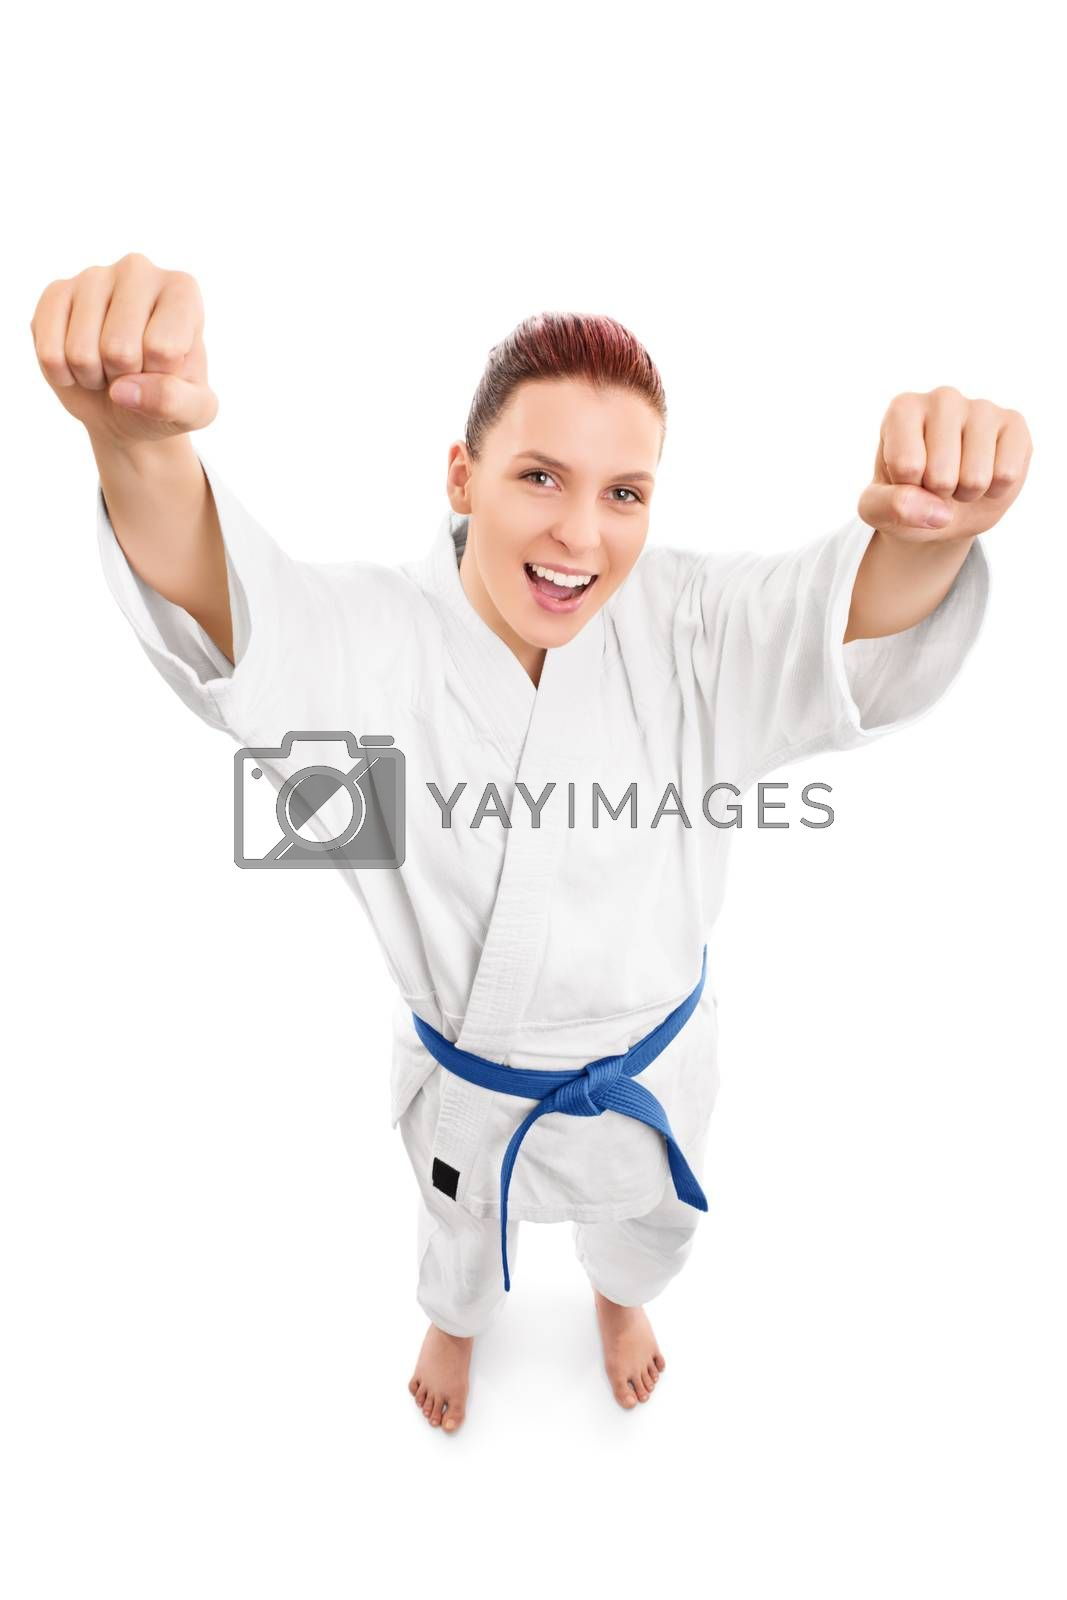 A portrait of a beautiful young girl in a kimono with blue belt cheering, from top perspective, isolated on white background.